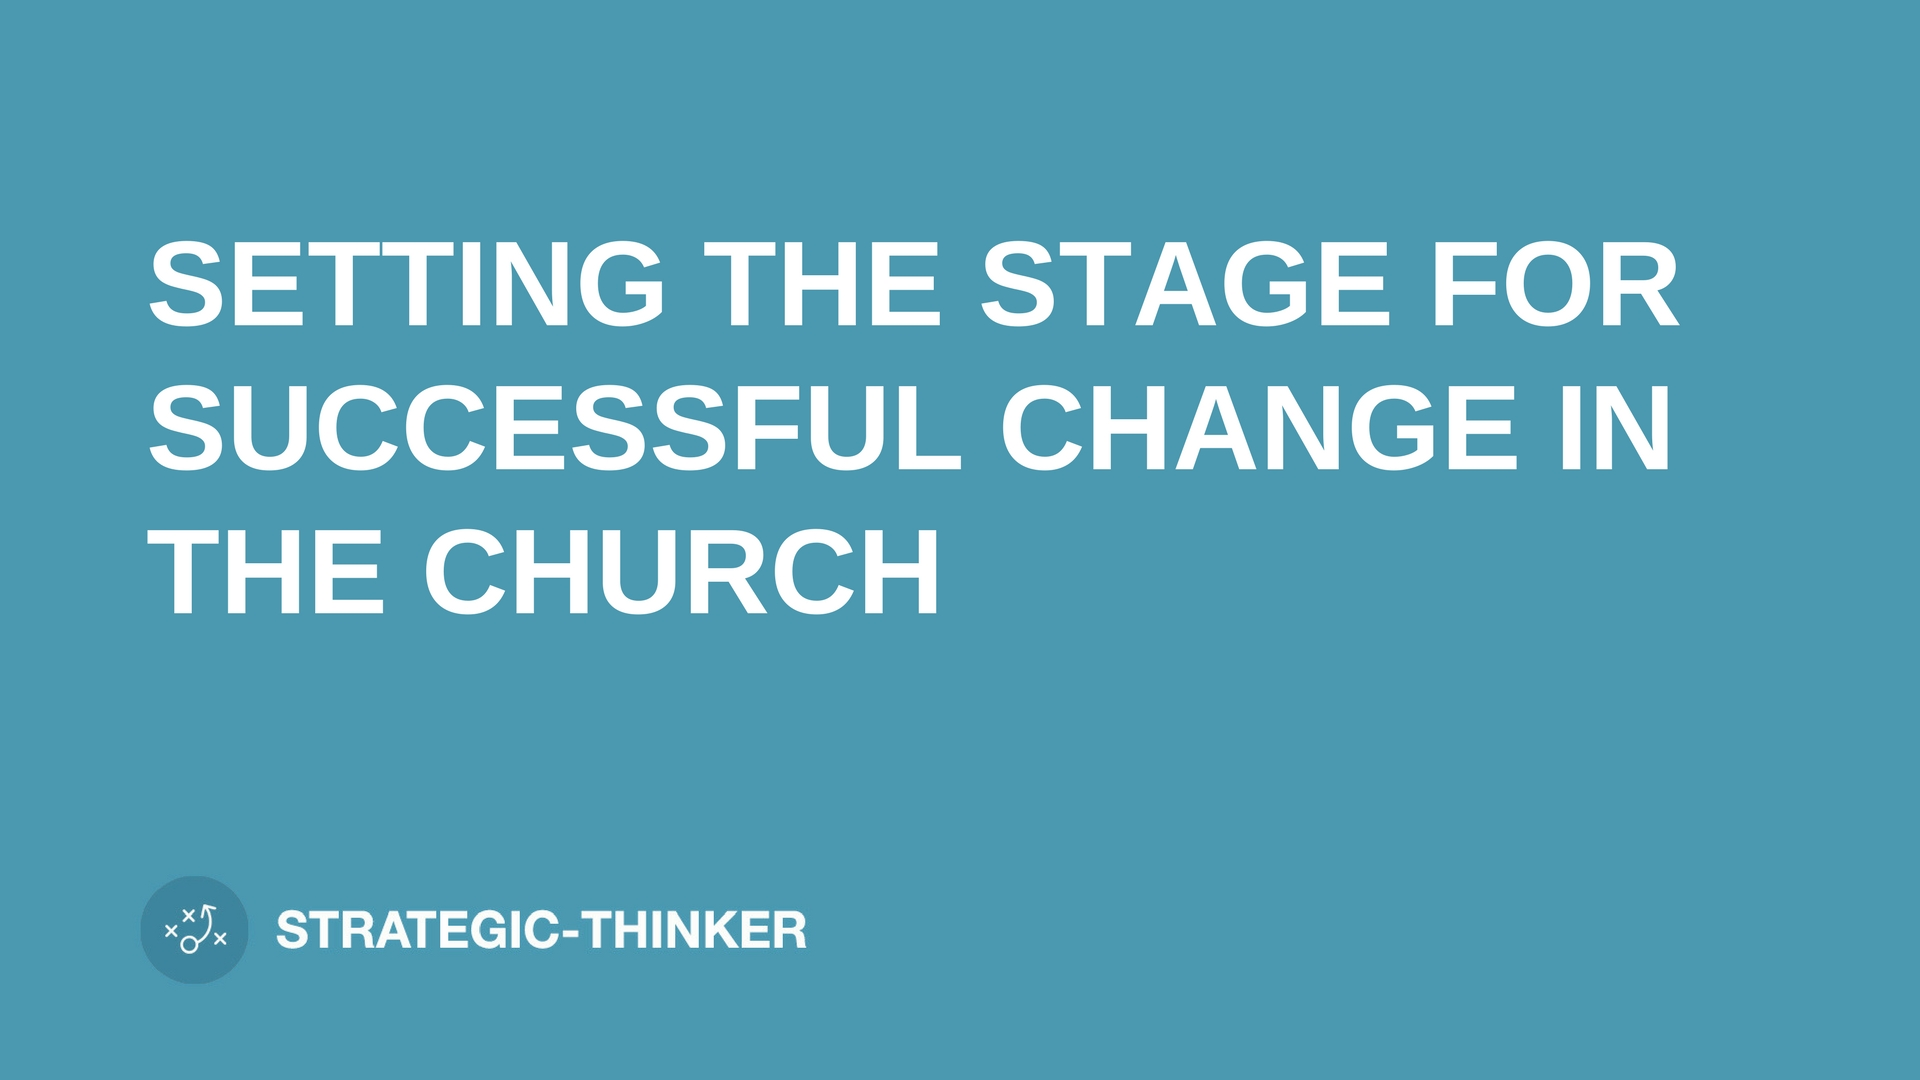 """text """"SETTING THE STAGE FOR SUCCESSFUL CHANGE IN THE CHURCH"""" on blue background leaders.church"""